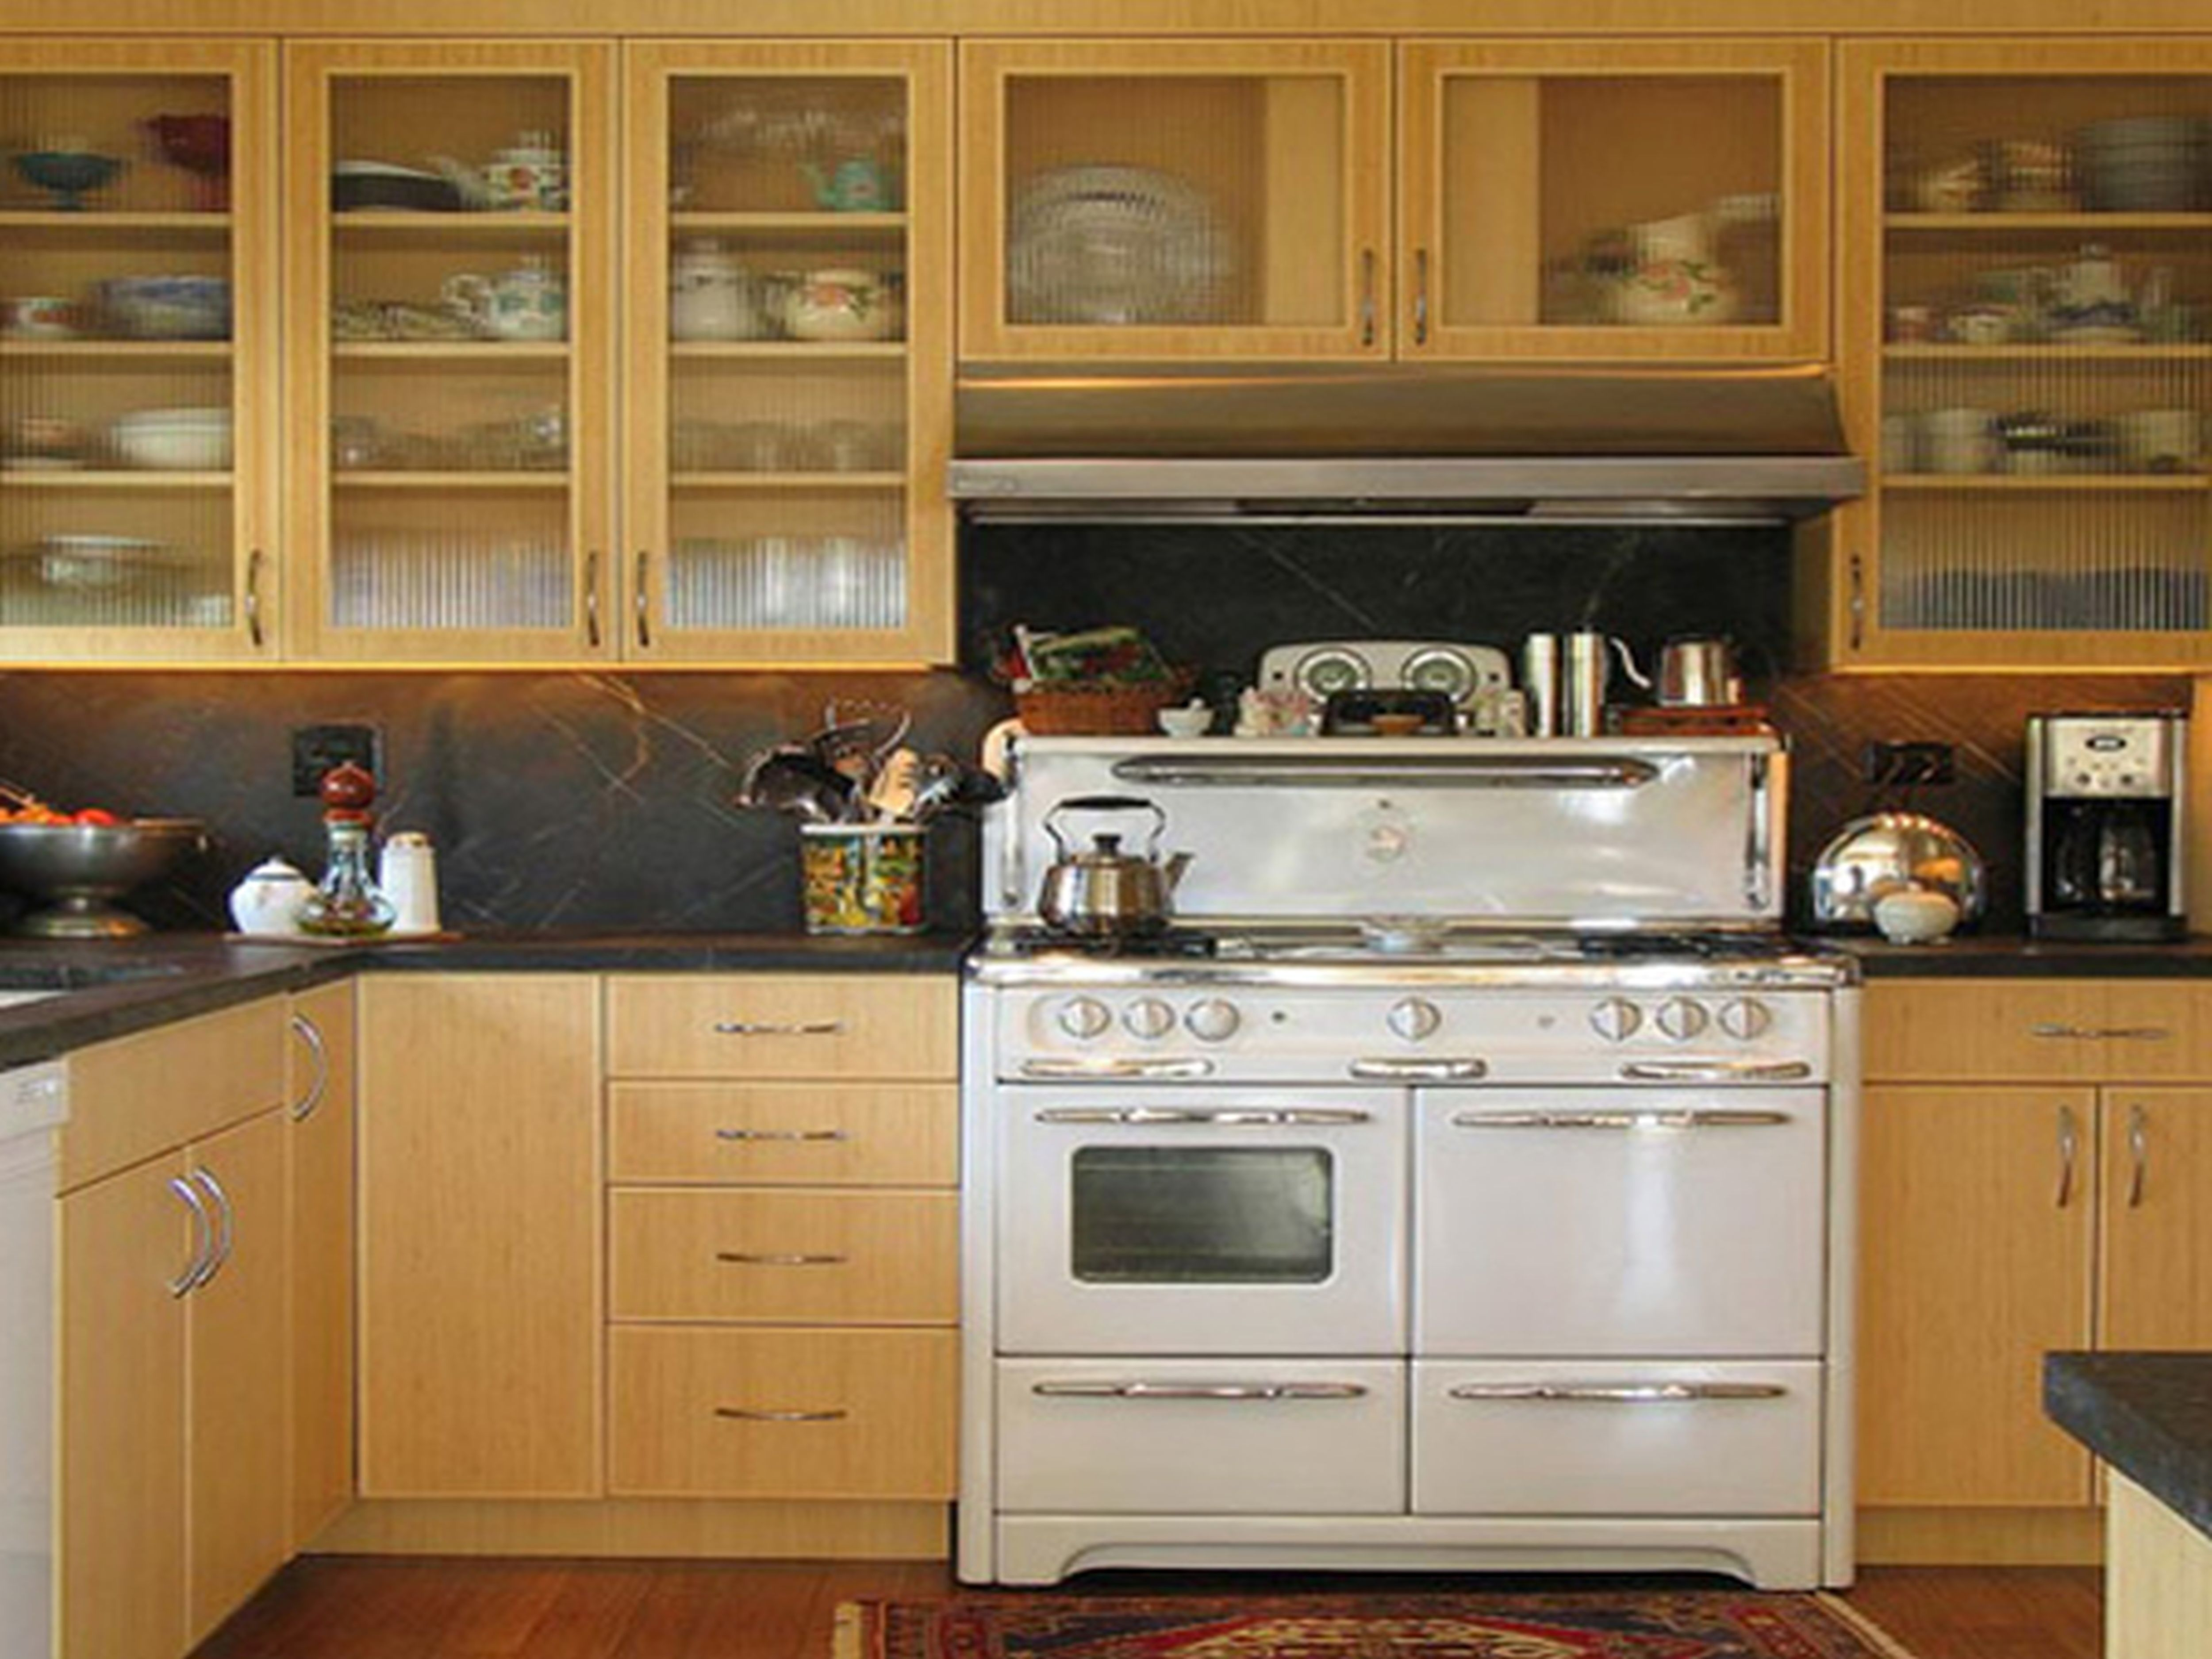 Genial Hanging Cabinet Design For Small Kitchen